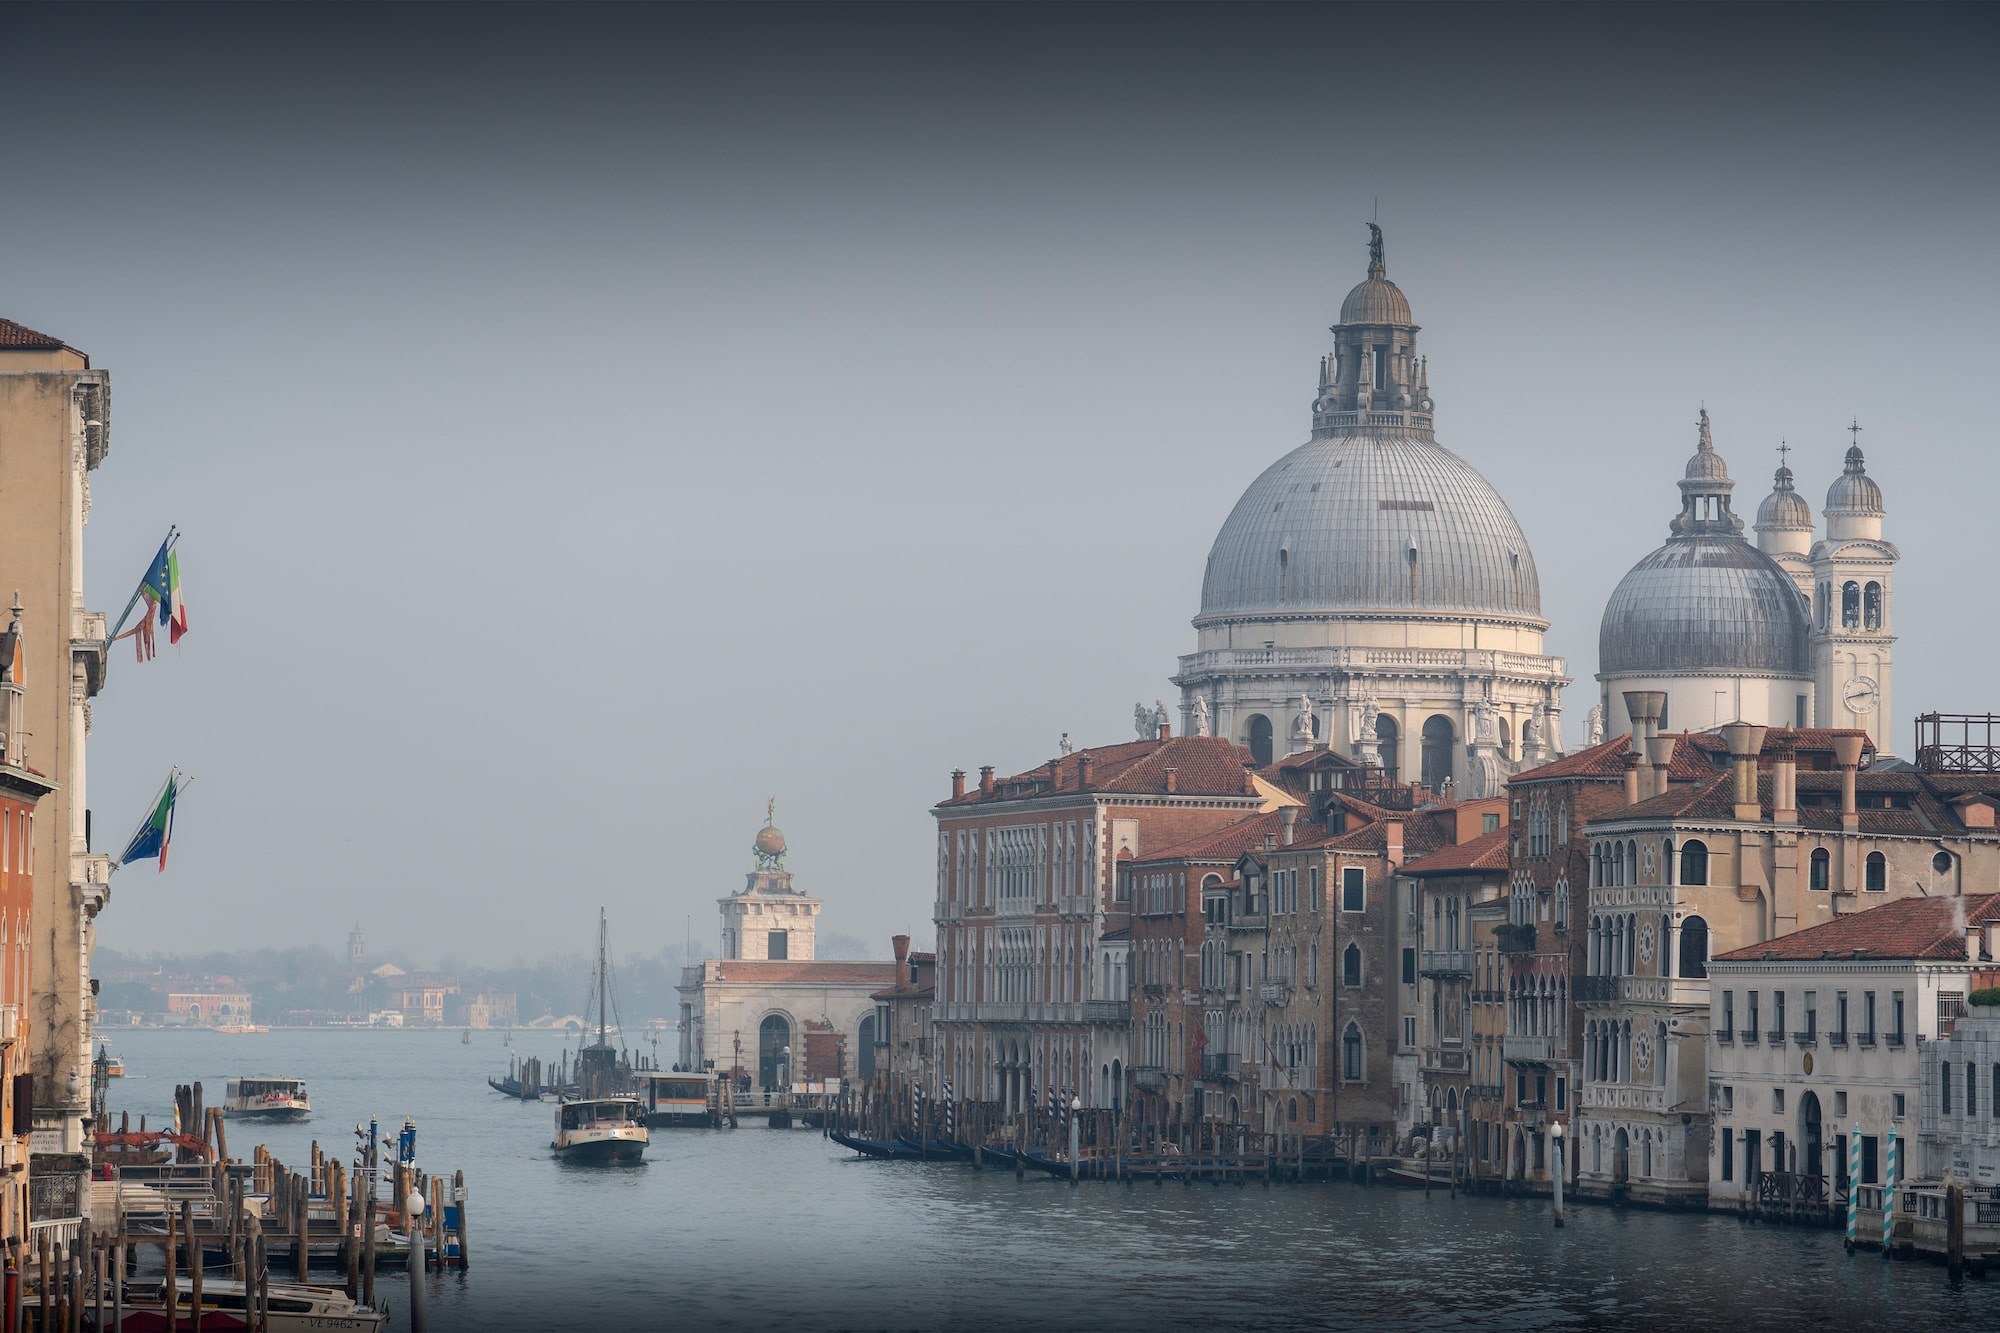 ilhan eroglu sony A6600 a hazy view from the rialto bridge in venice looking over the grand canal